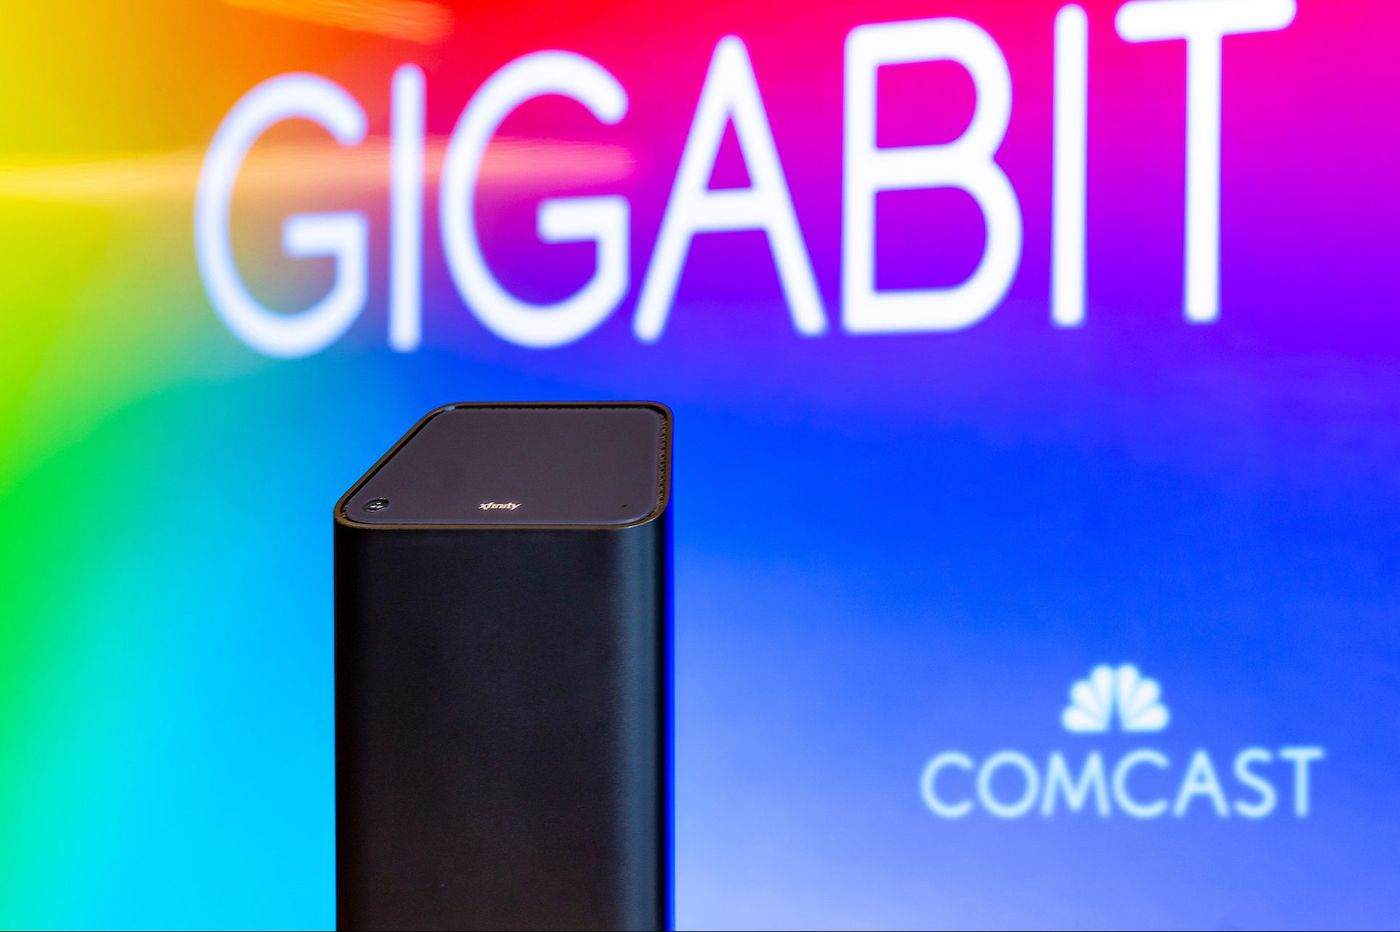 Comcast Says It's the Largest Provider of 1GB Internet Service